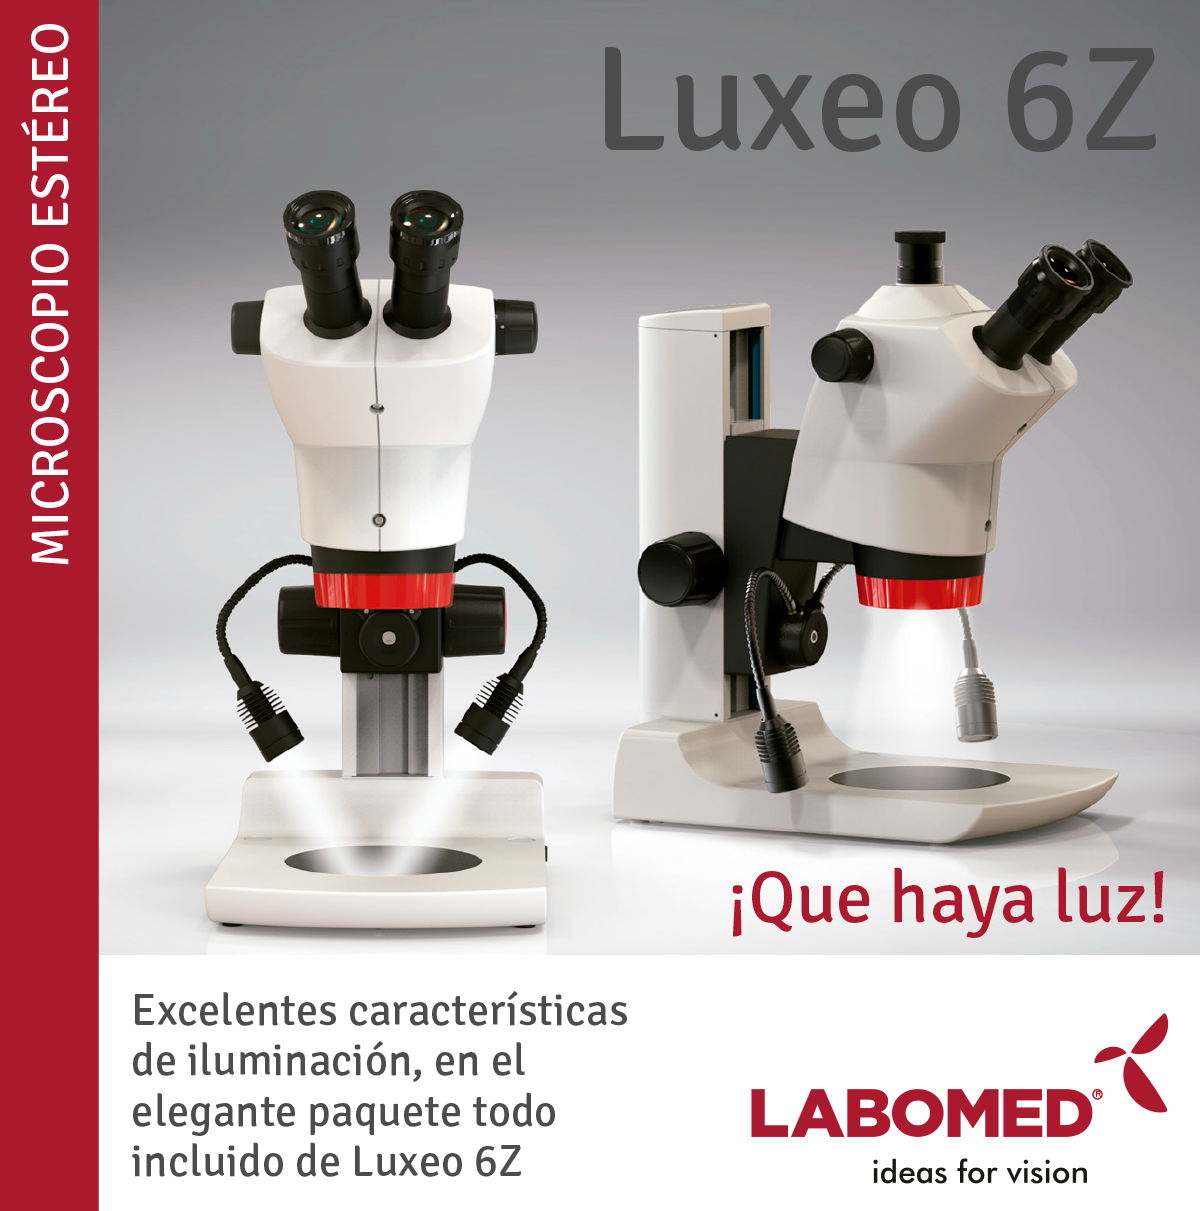 luxeo 6z microscopio estereo labomed